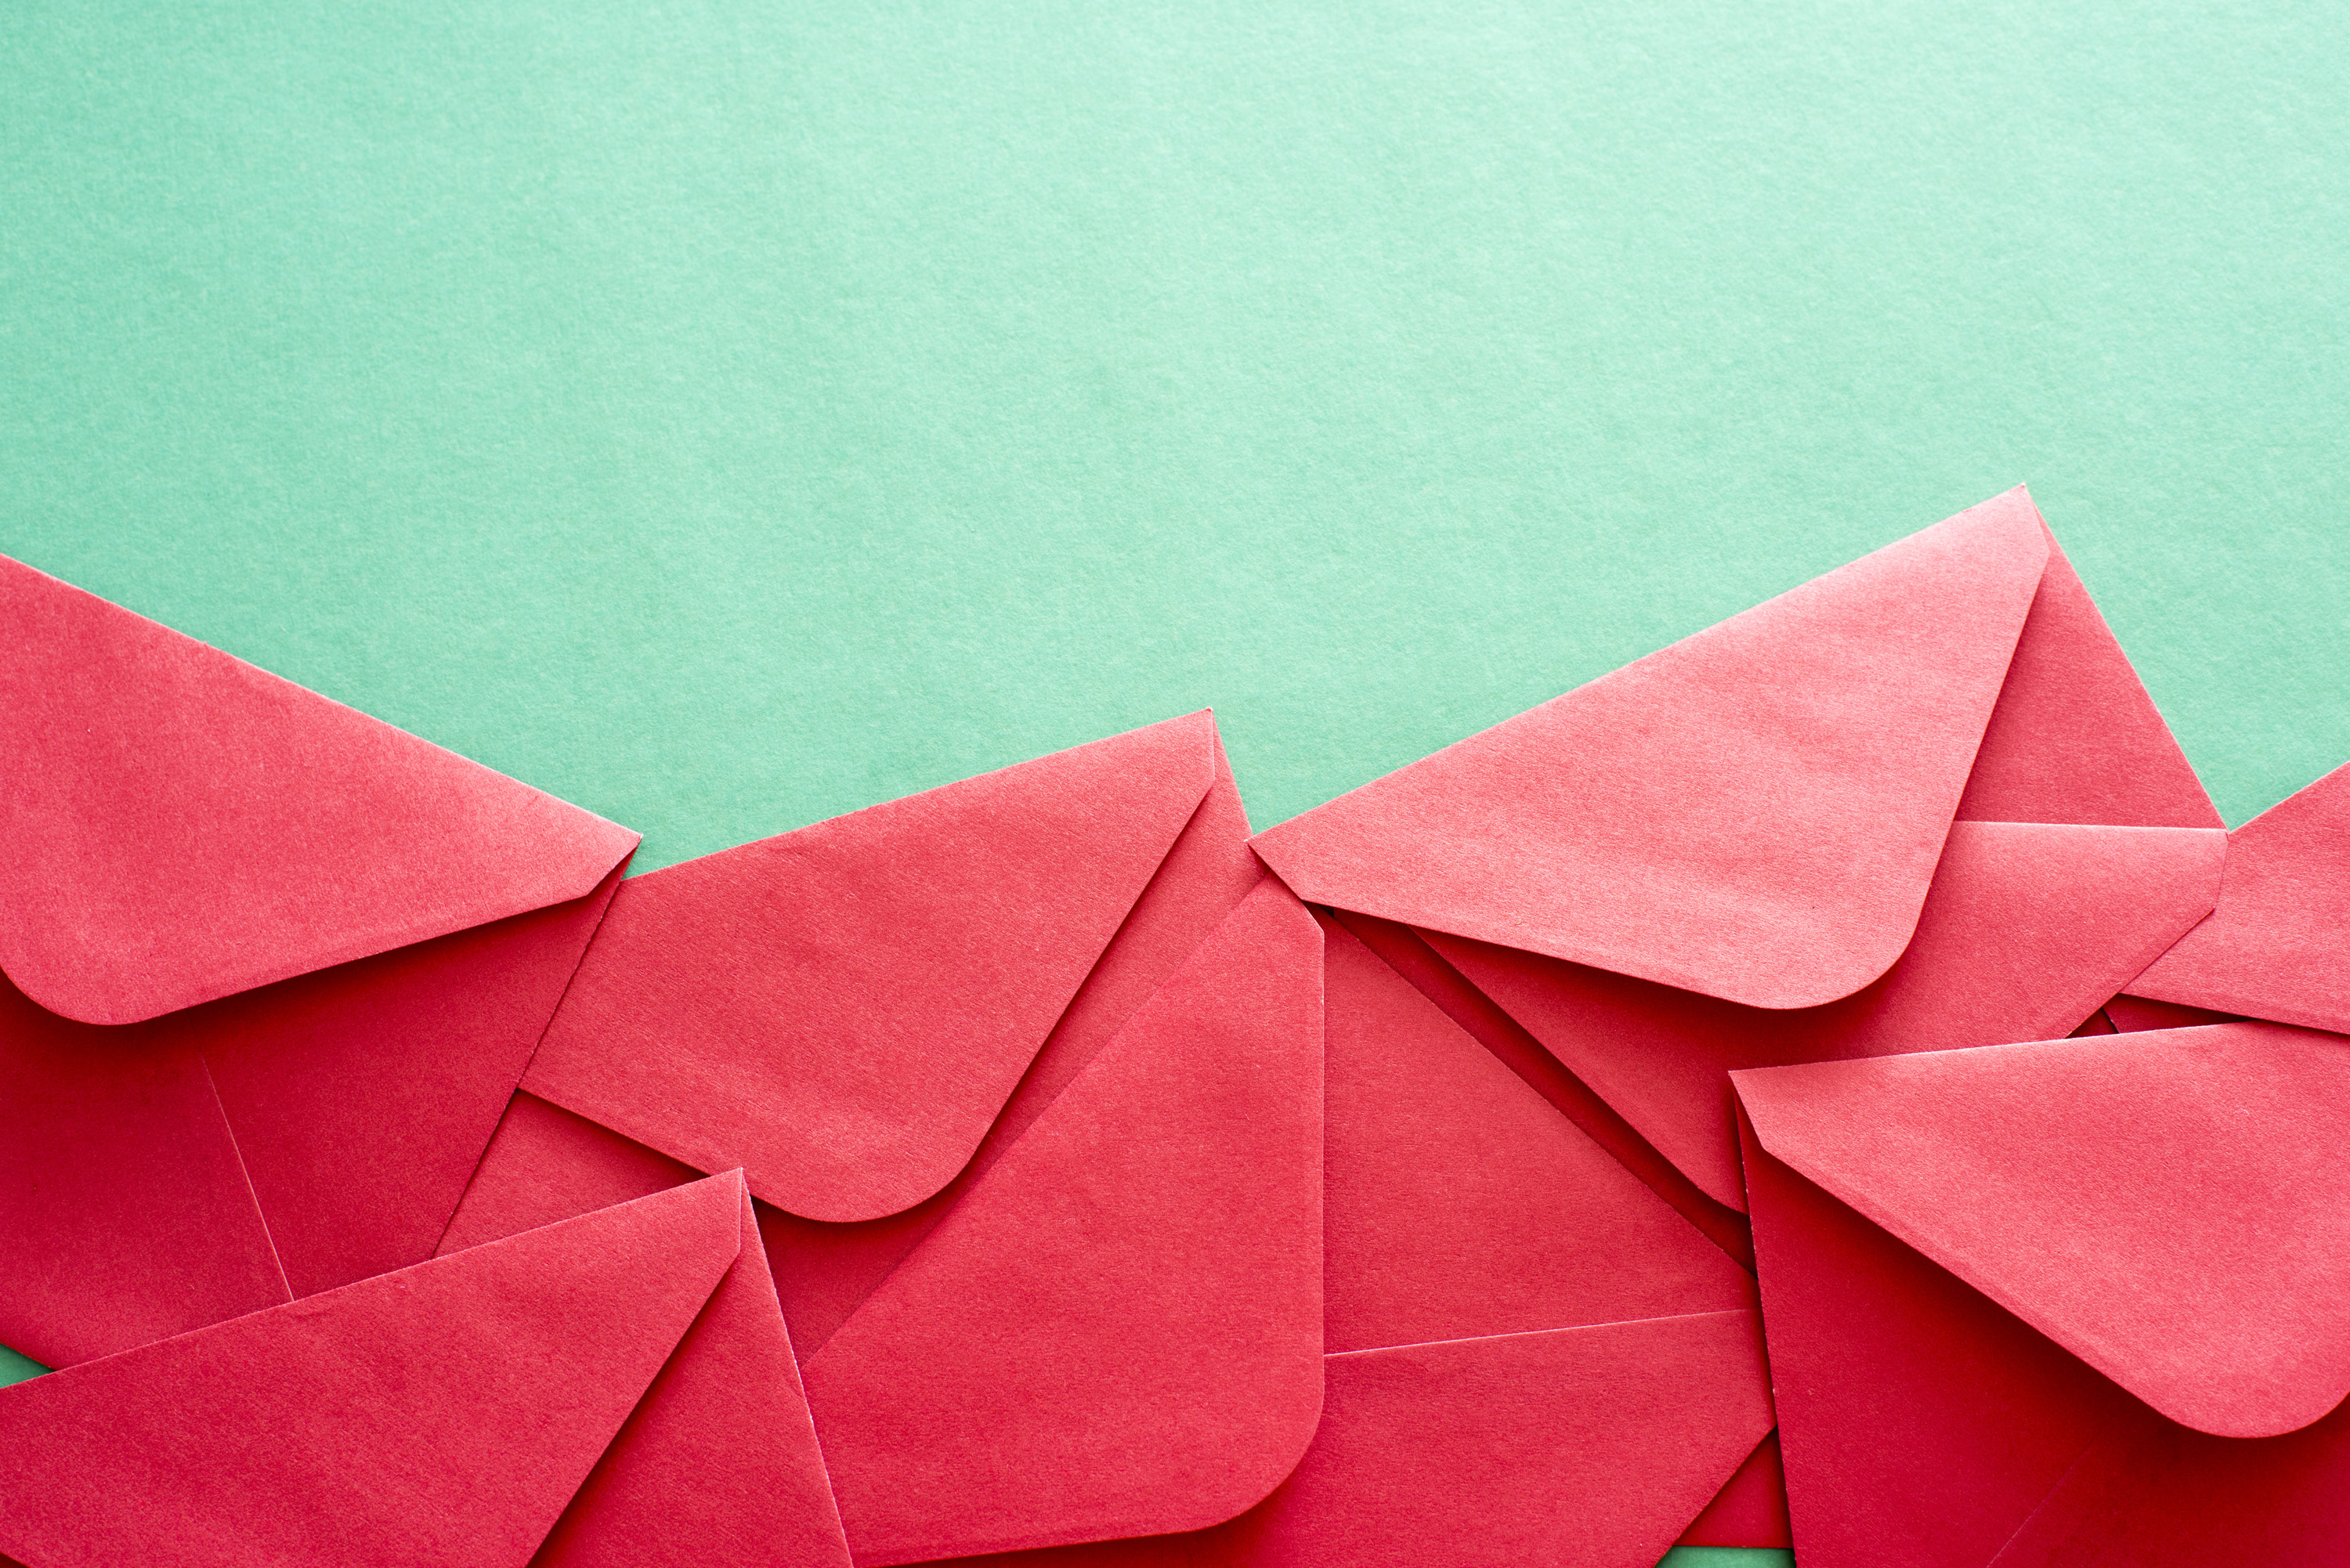 Festive red Christmas or valentines envelope border over a textured green paper background with copy space